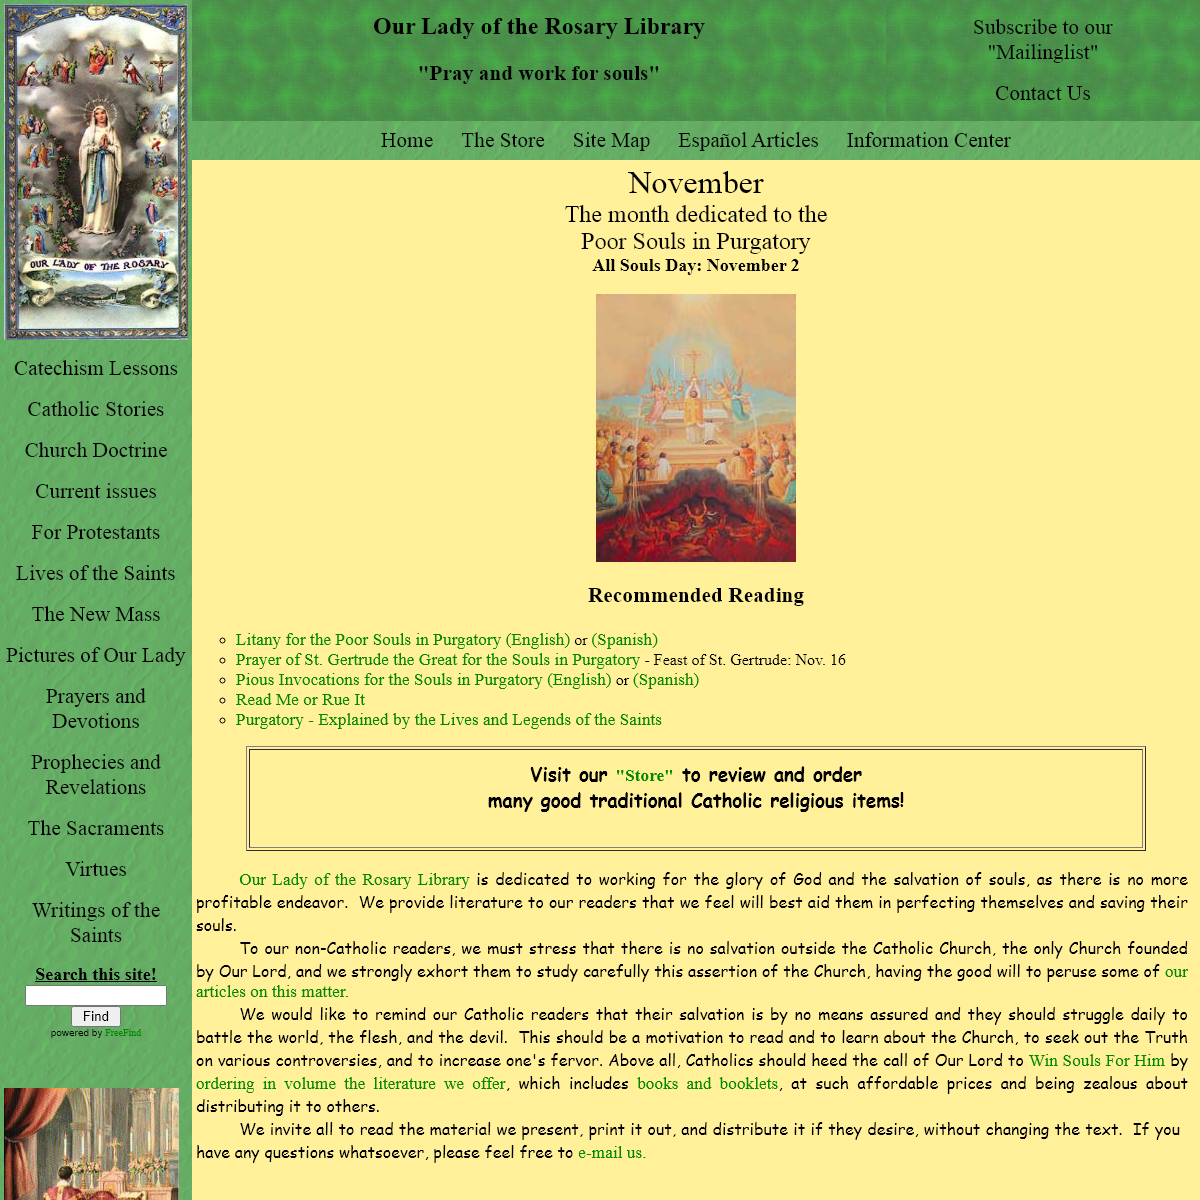 Our Lady of the Rosary Library Traditional Catholic Homepage